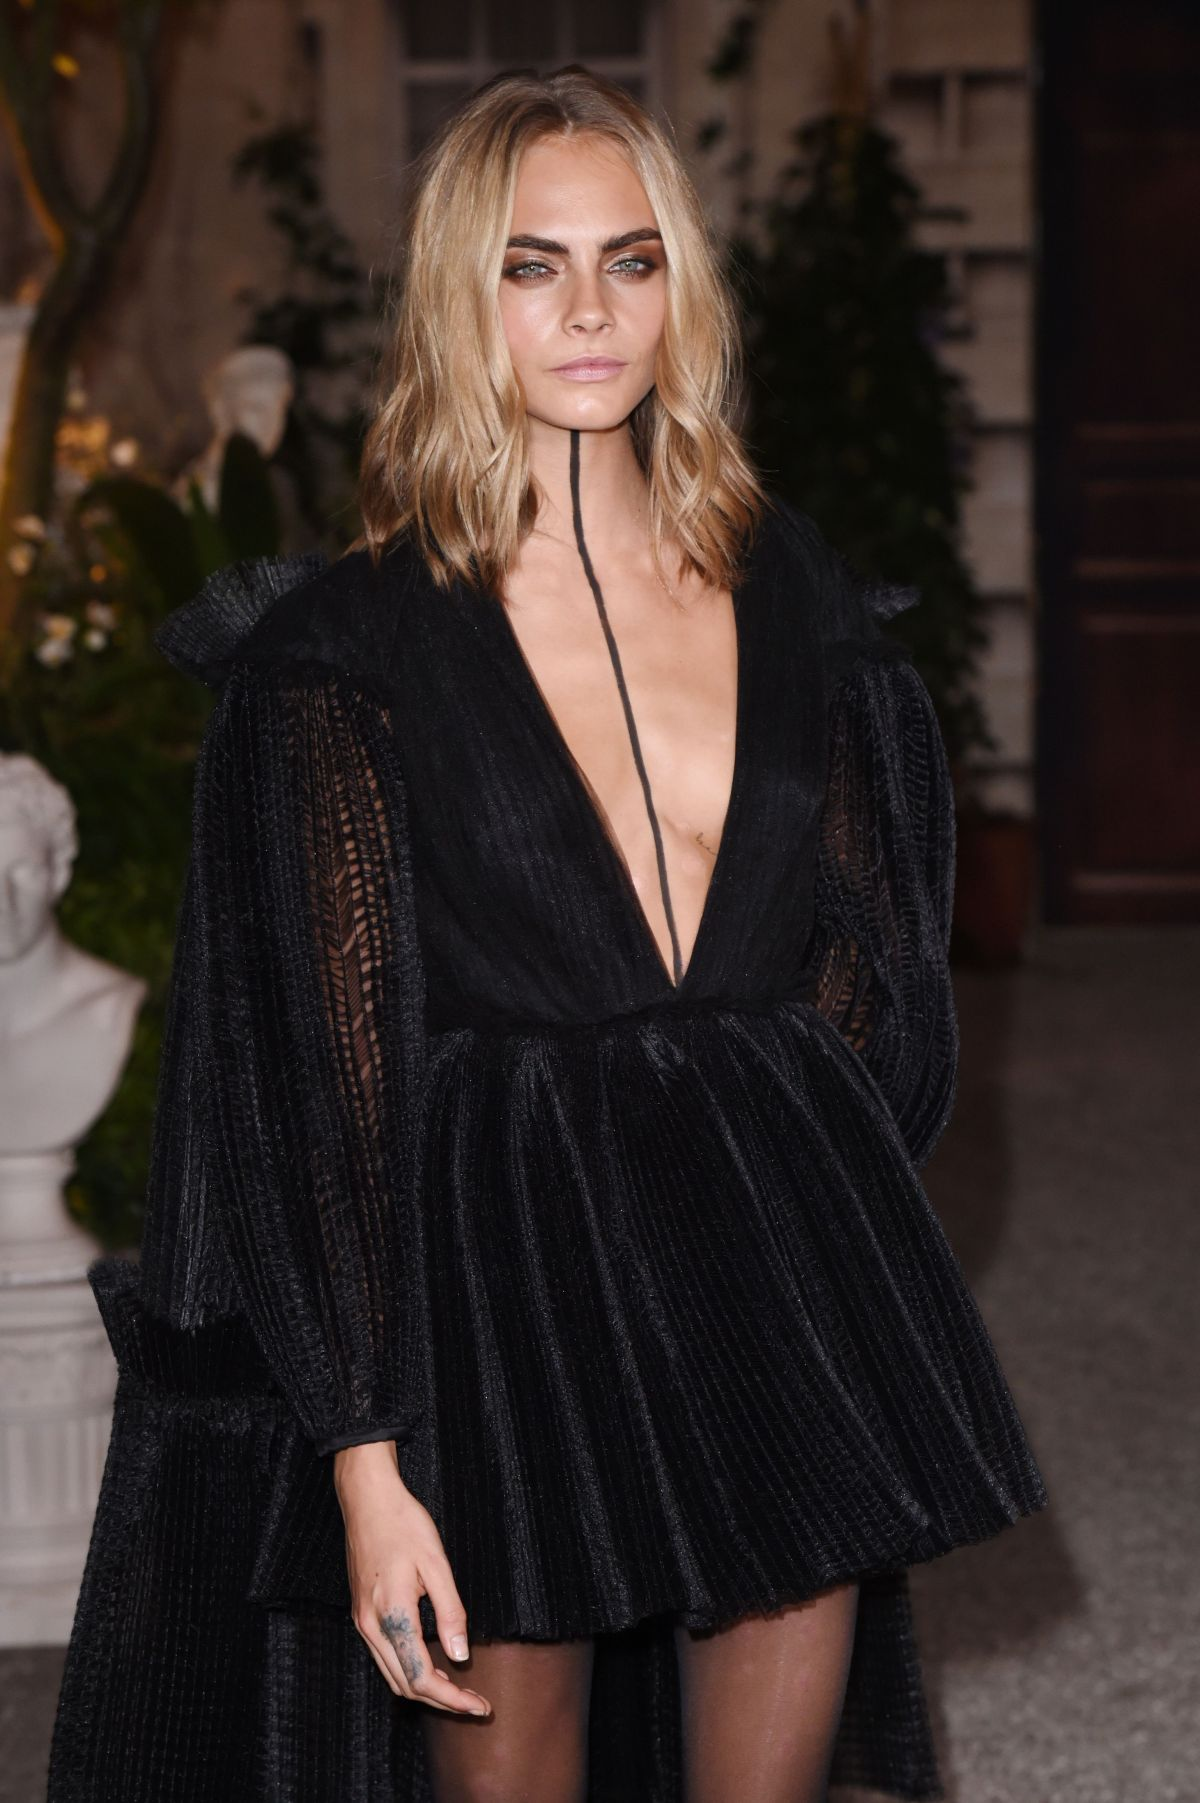 Cara delevingne at burberry show during london fashion week celebzz - Burberry fashion show ...